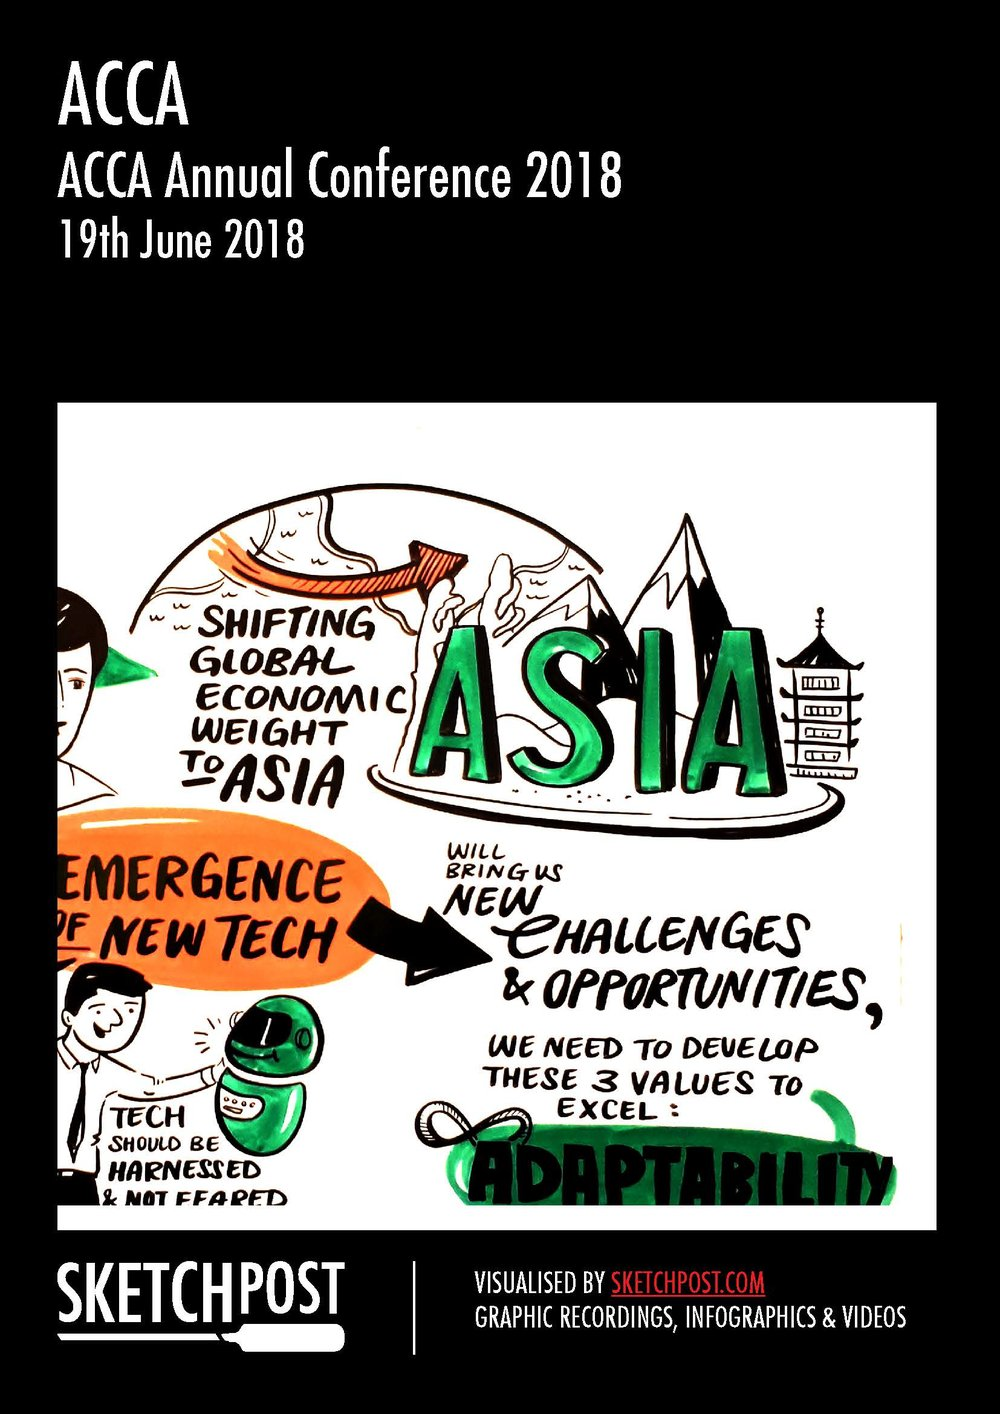 ACCA ANNUAL CONFERENCE 2018 - Sketch Post compilation_Page_01.jpg